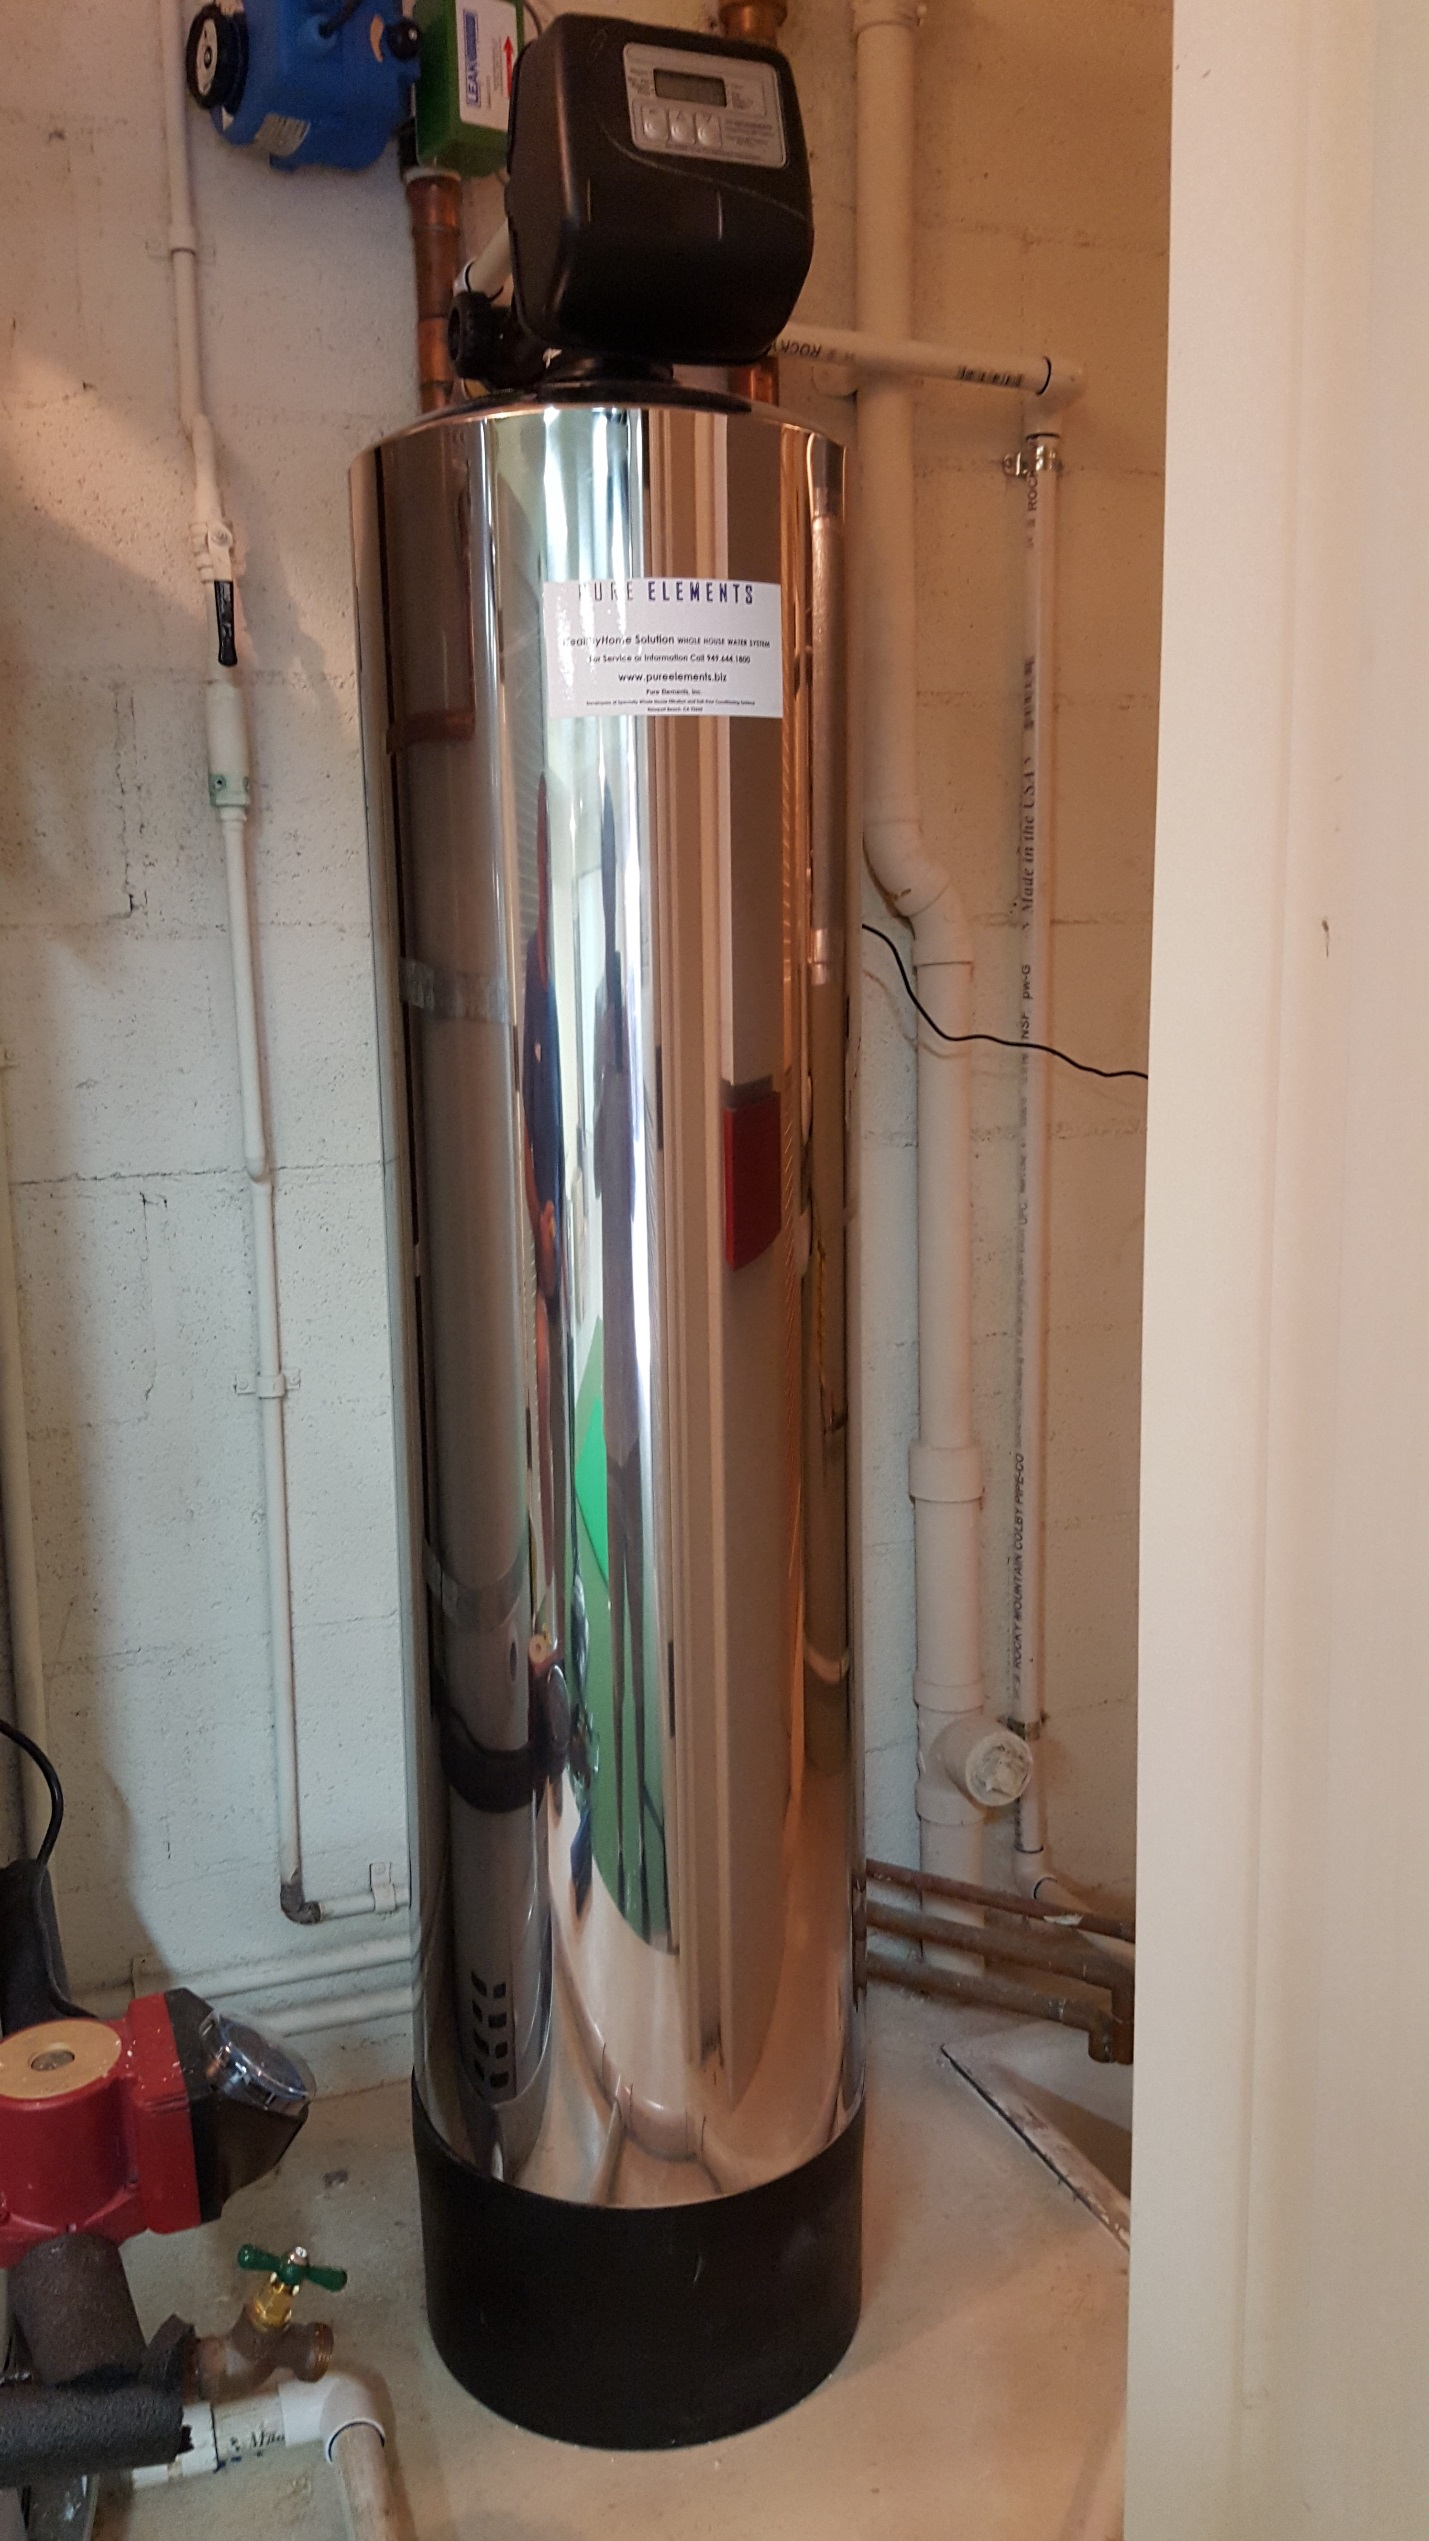 Family Chooses Quality Home Water Filter in Pelican Hill Newport Beach CA